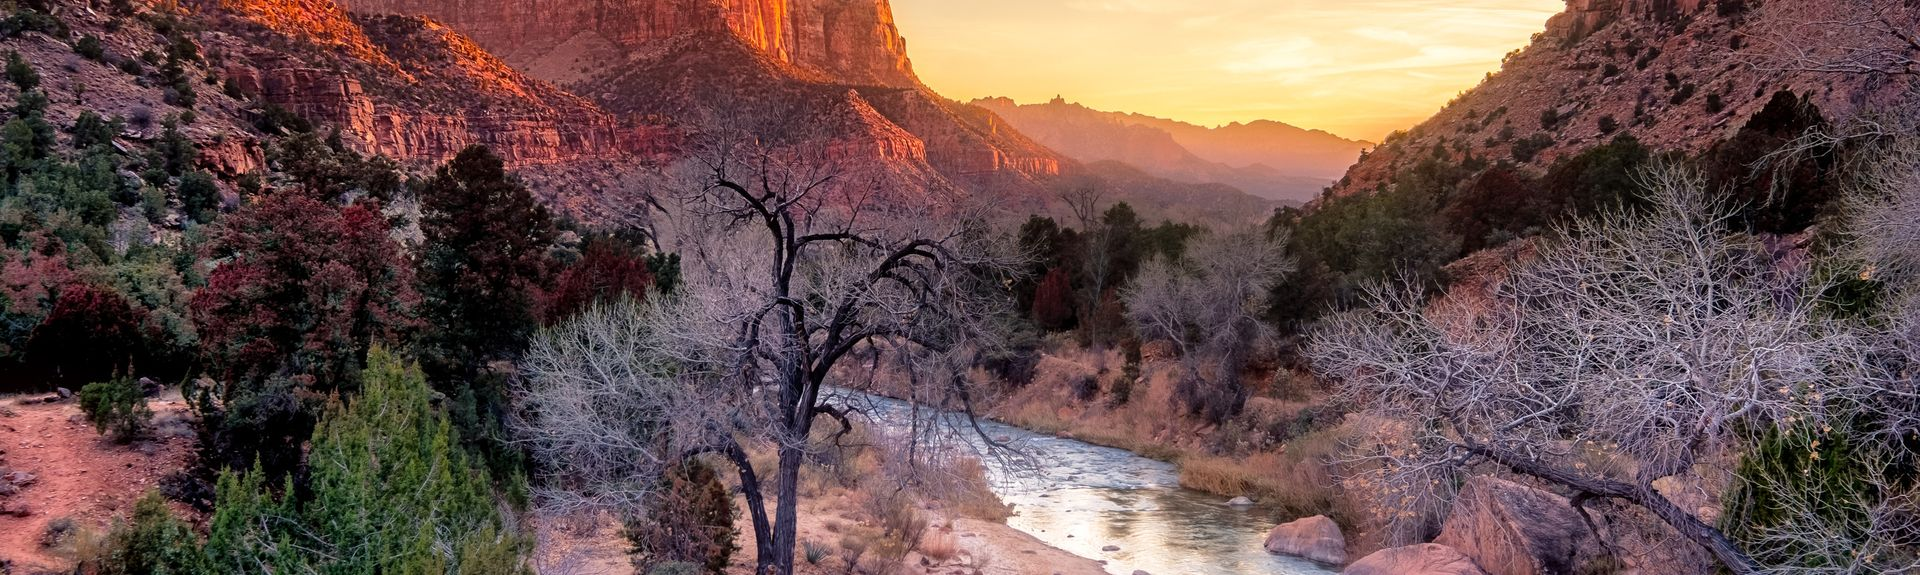 Zion National Park, Springdale, Utah, United States of America